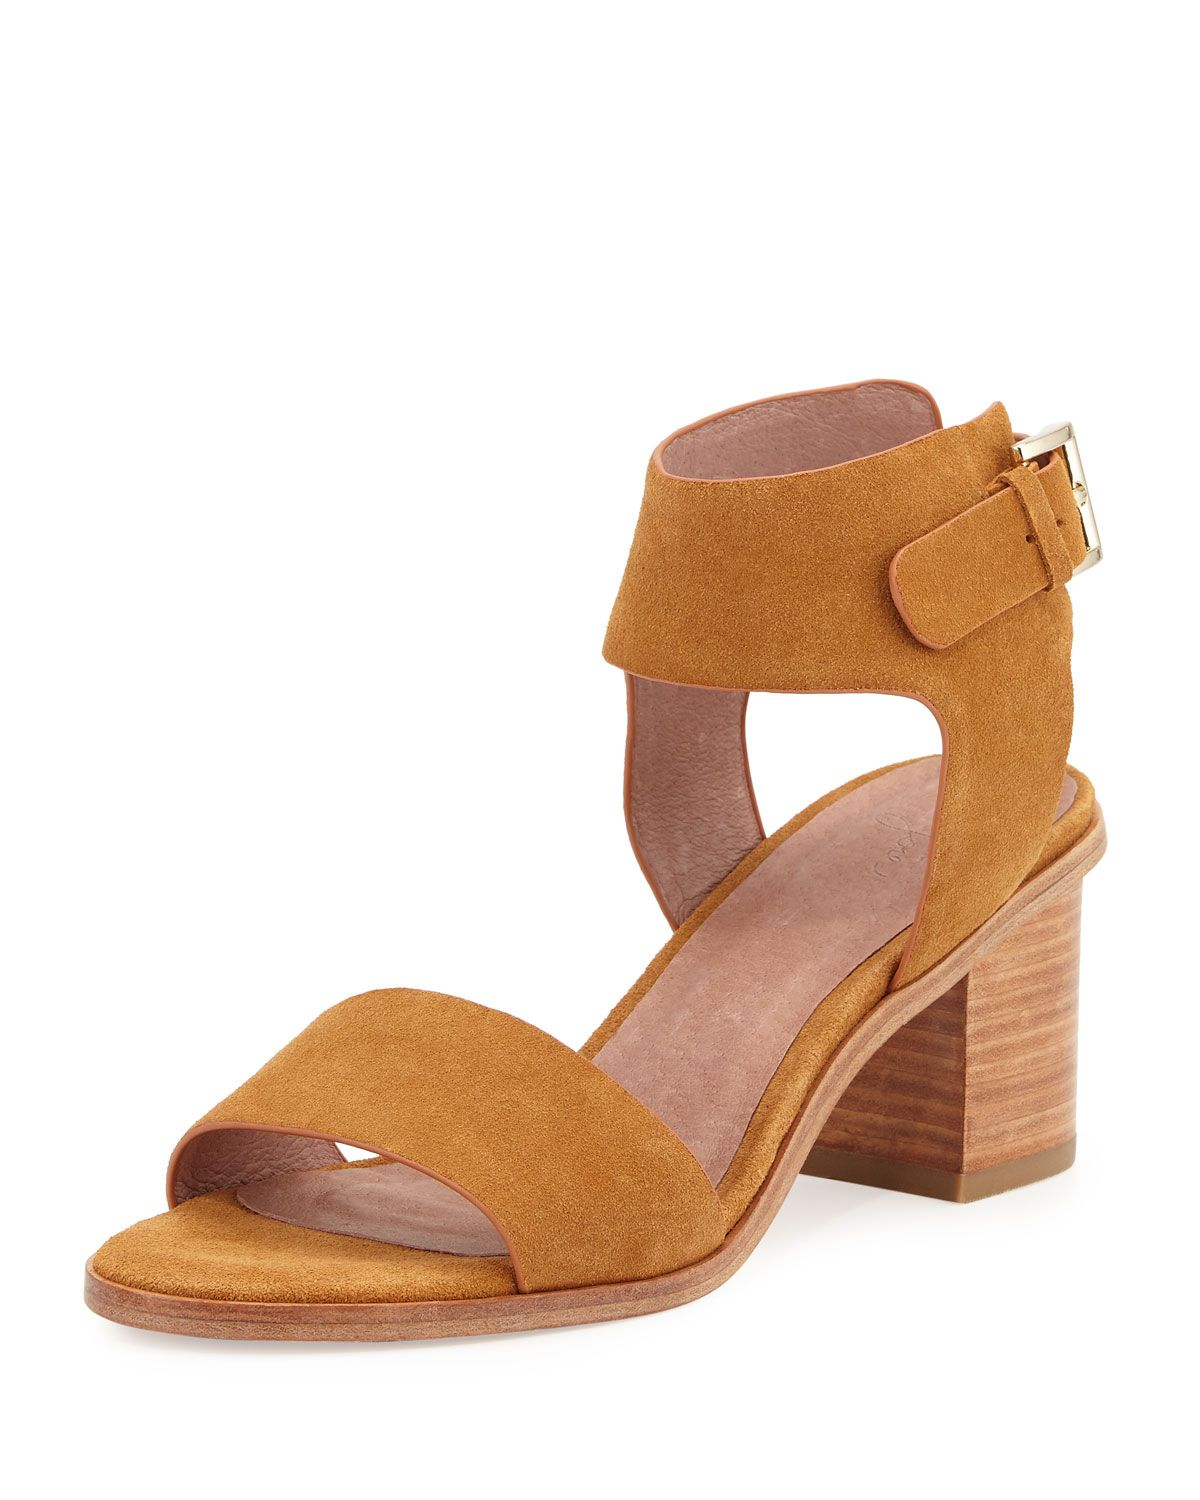 33ea38b9a2e Bea Suede Mid-Heel City Sandal Whiskey in 2019 | Outfits | Mid heel ...